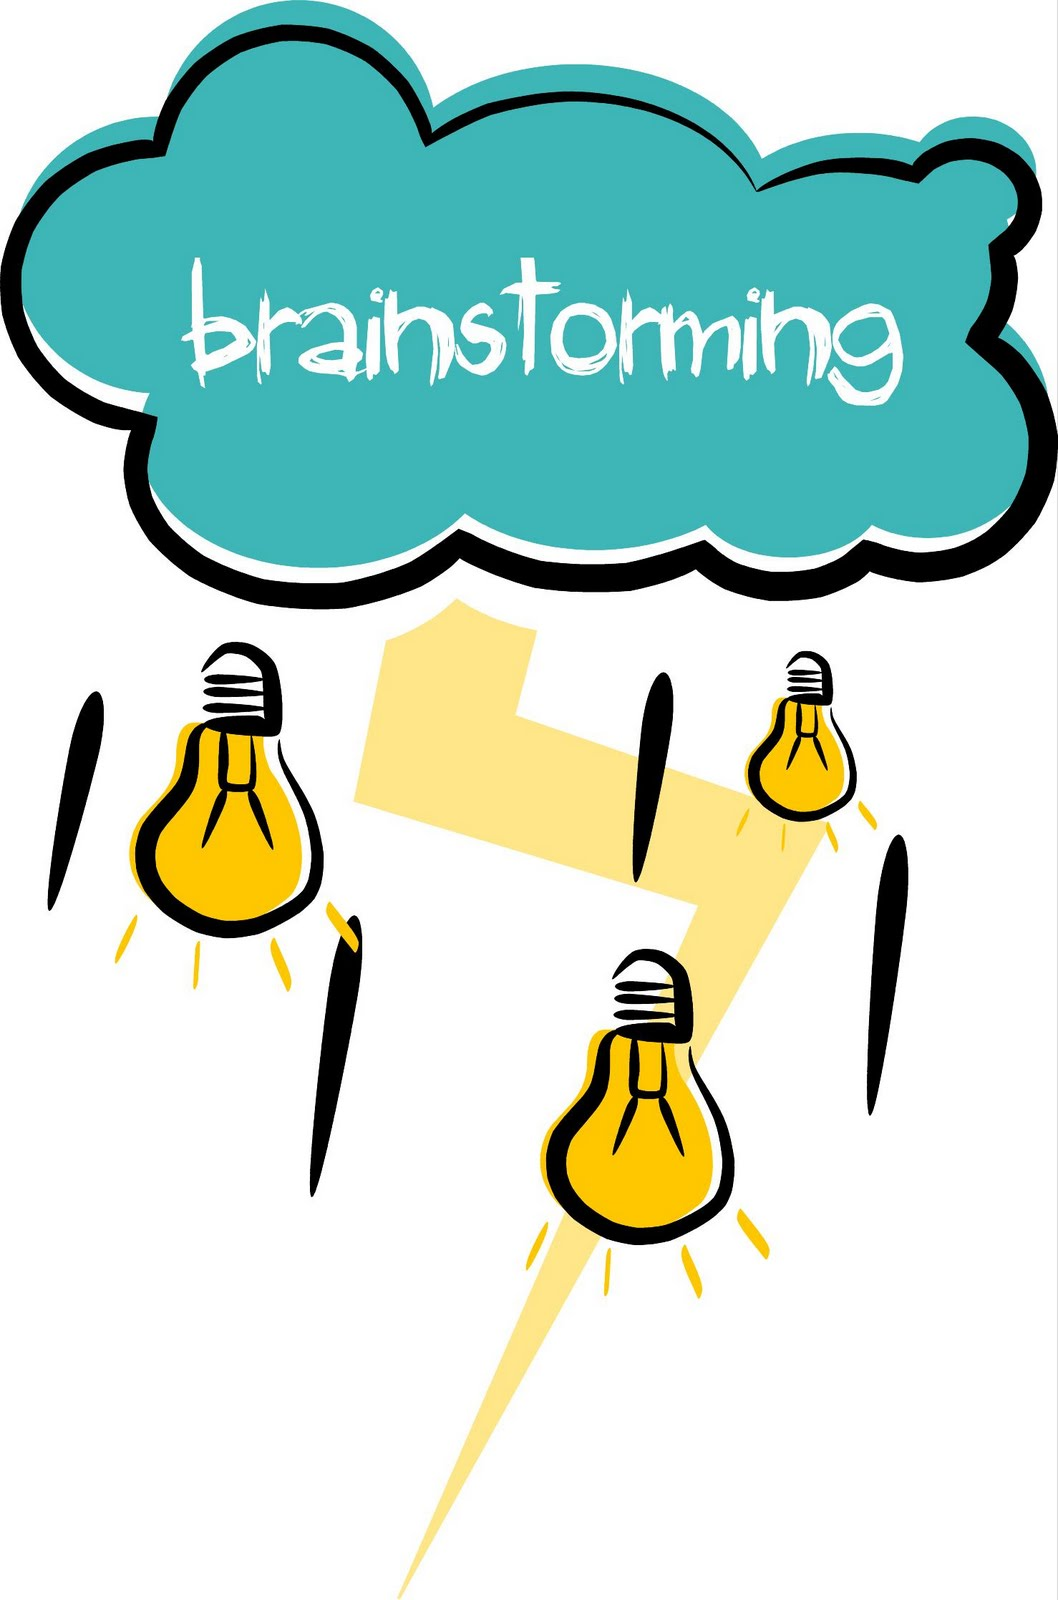 Brainstorm clipart. Free brainstorming cliparts download